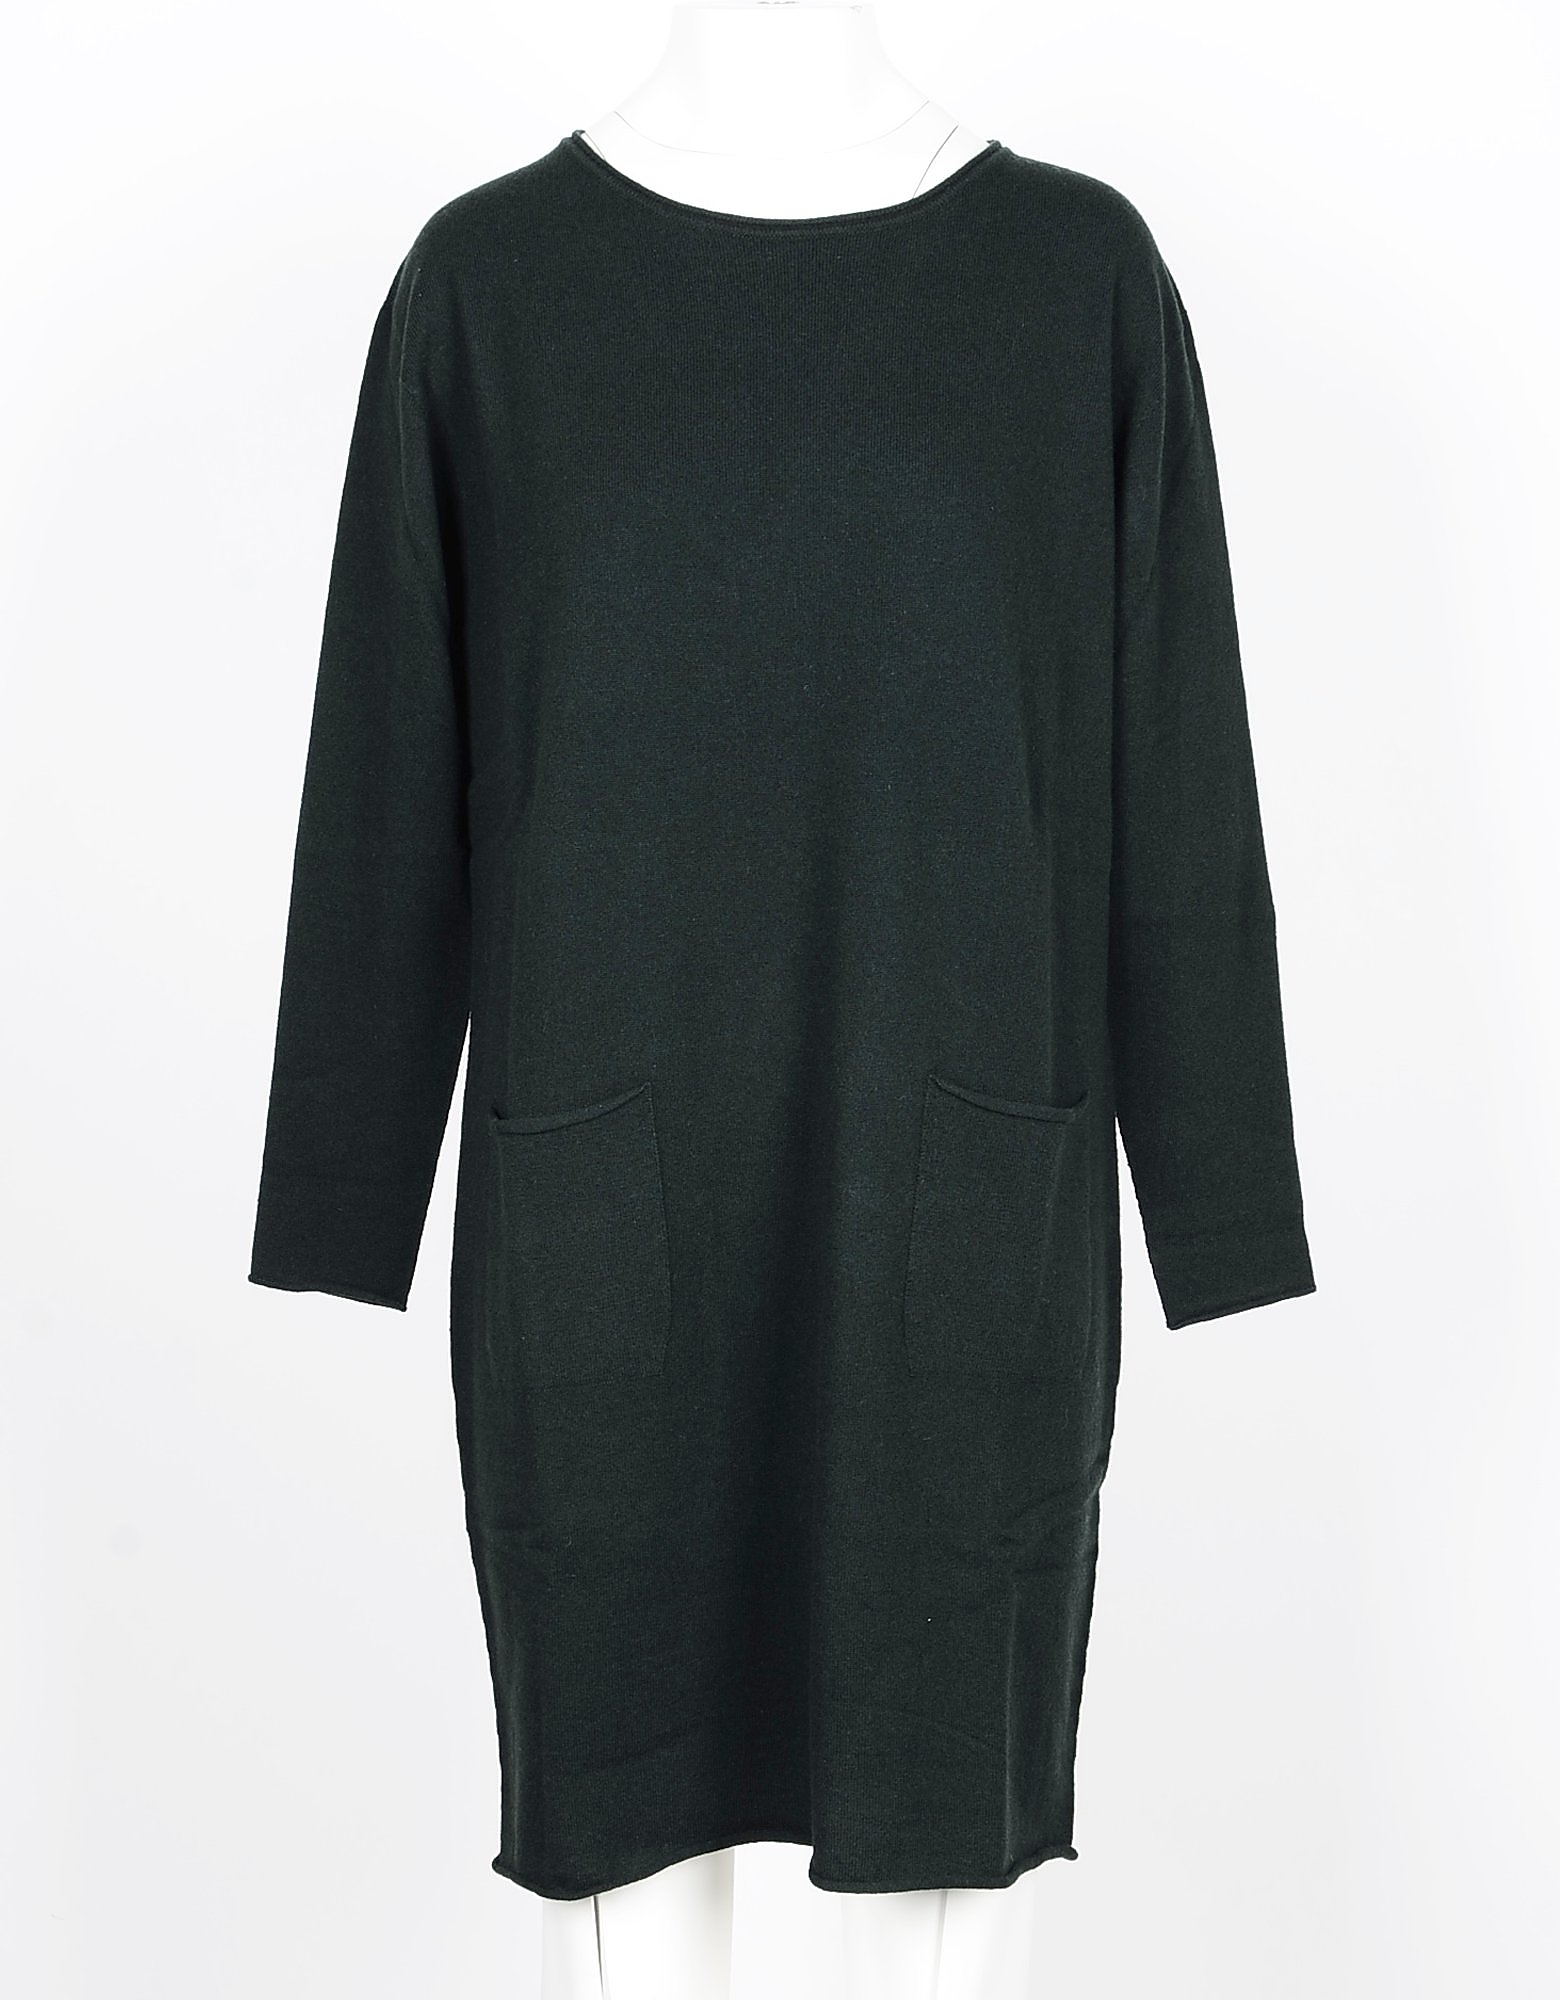 Lamberto Losani Designer Dresses & Jumpsuits, Green Wool, Silk and Cashmere Blend Women's Dress